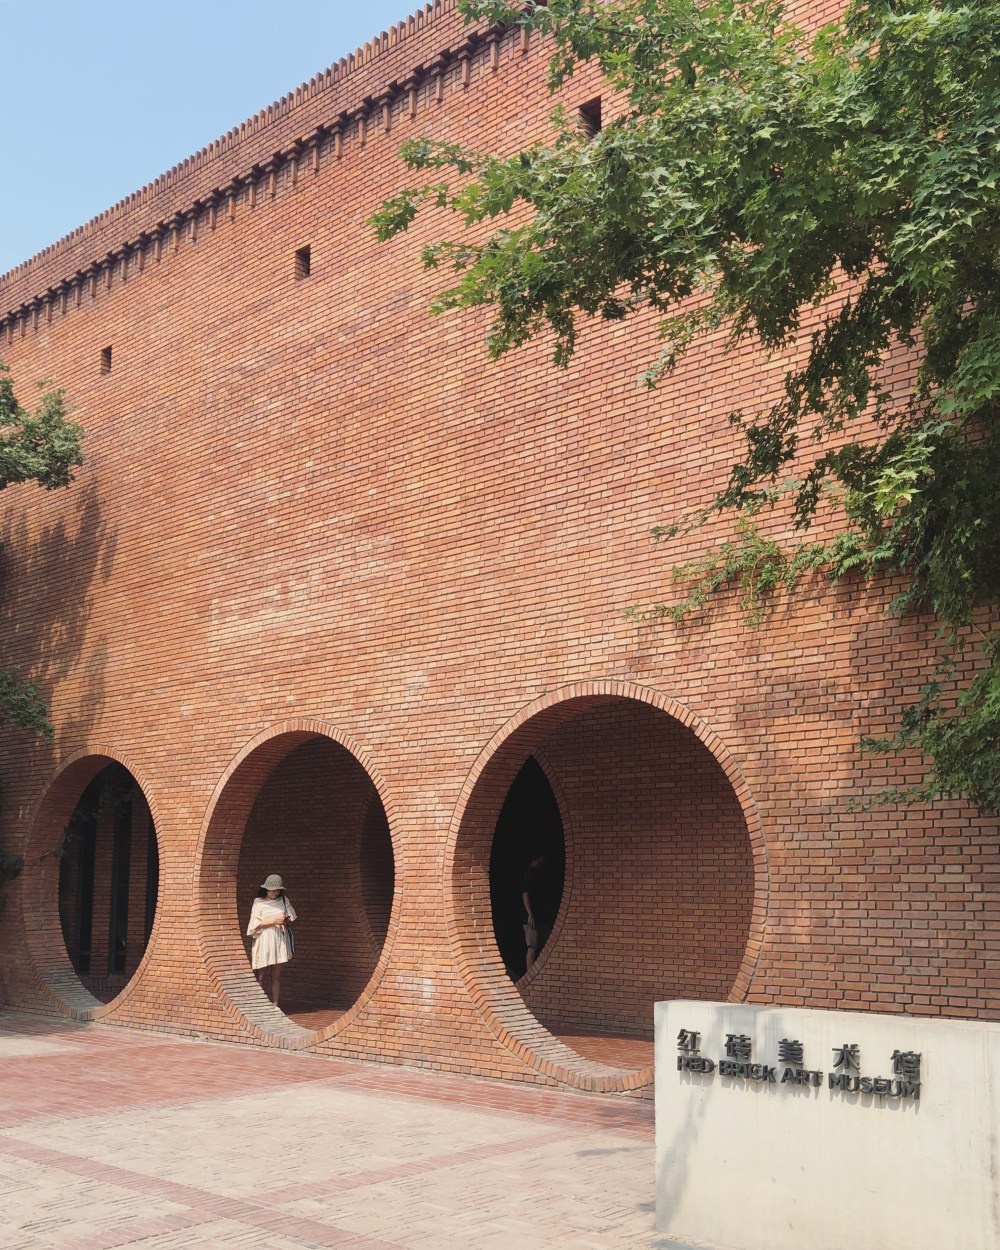 Red Brick Art Museum 1